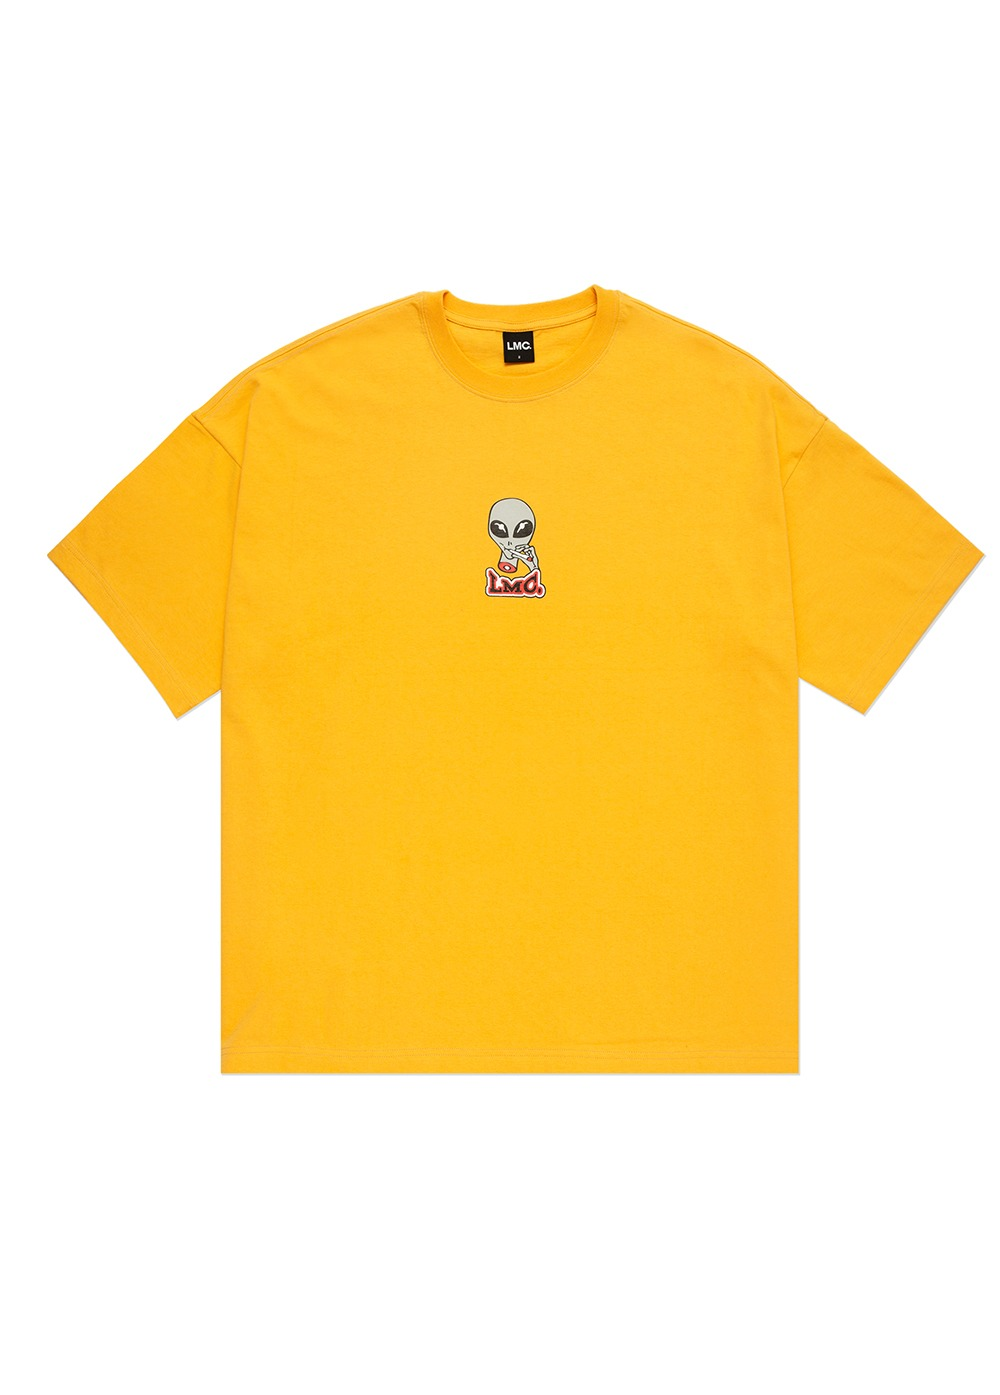 LMC SMOKING ALIEN OVERSIZED TEE yellow